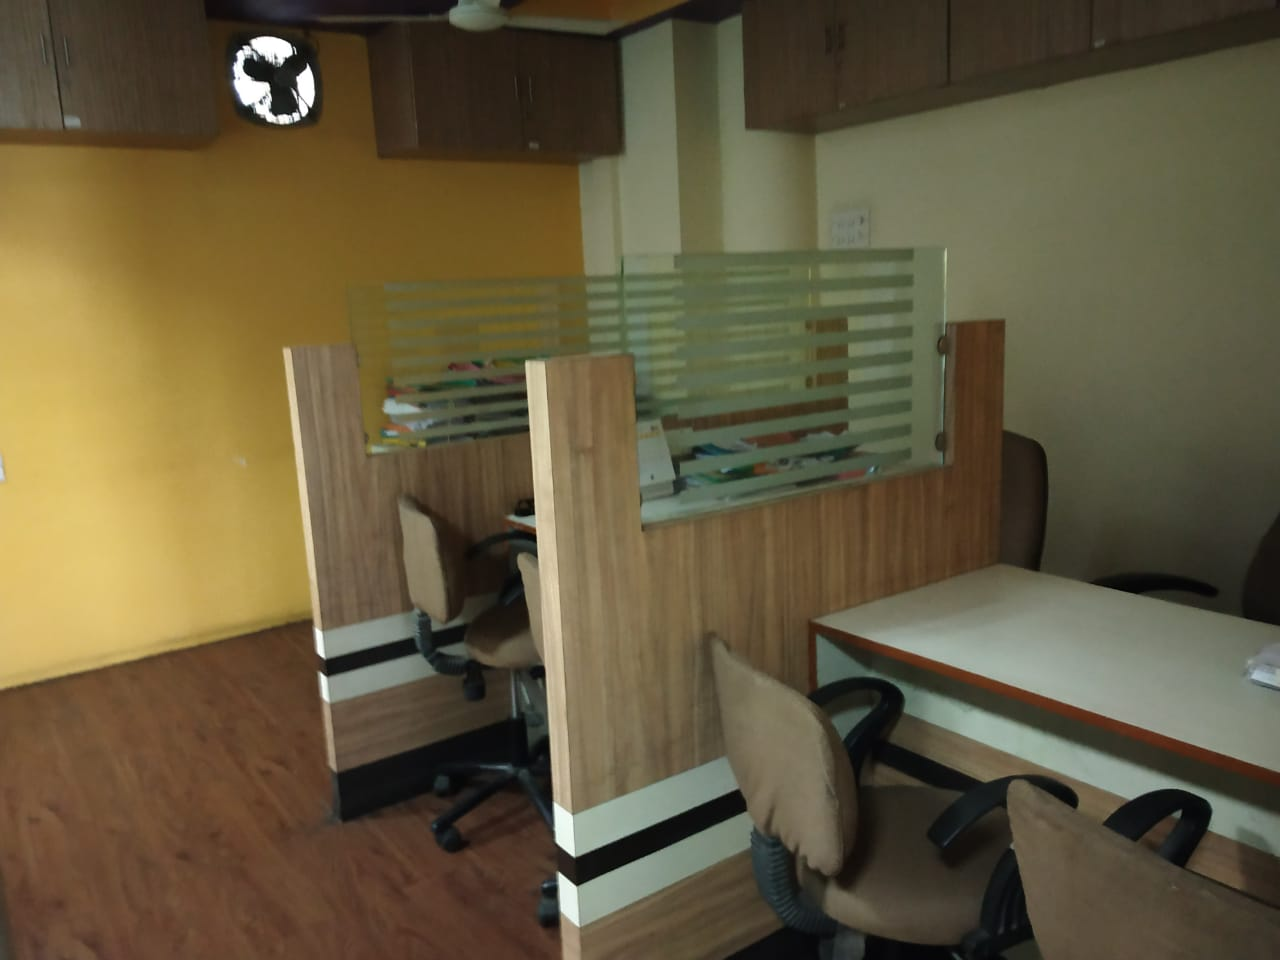 full furnished offices rent 60000 with all facility. in shrddhanand peth